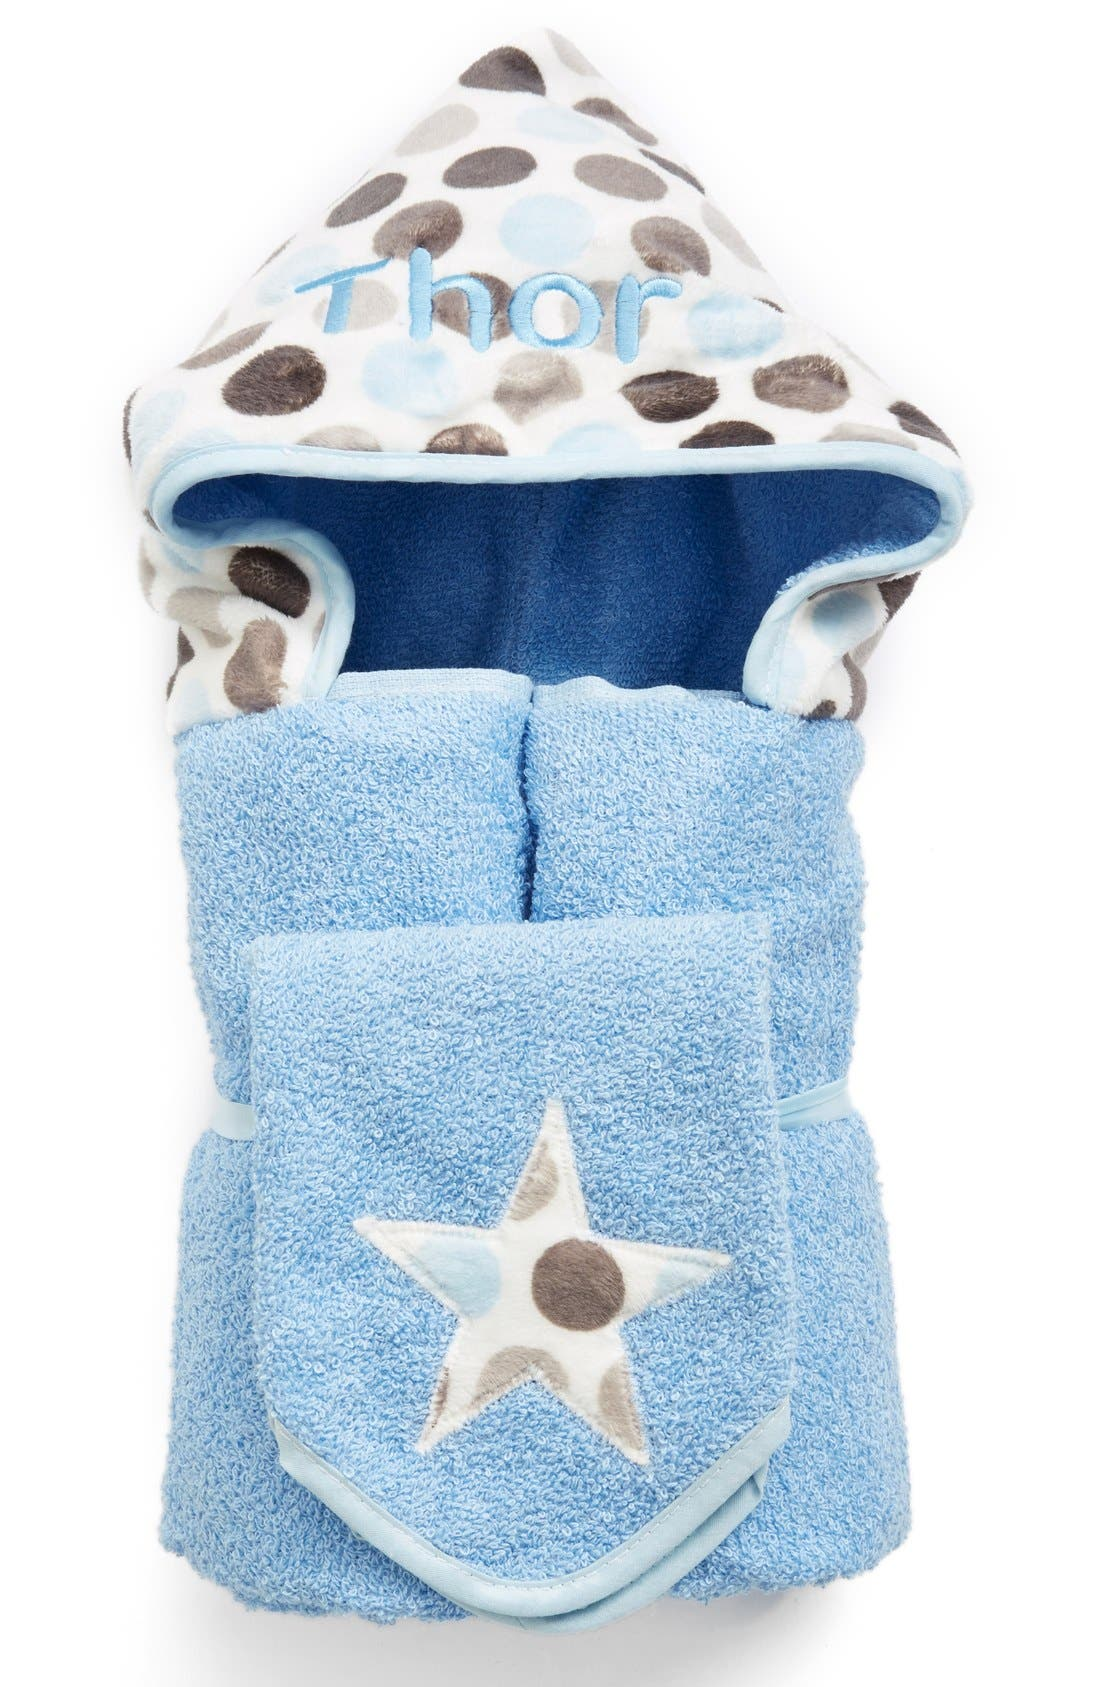 BIBZ N THINGZ Personalized Hooded Towel, Main, color, BLUE DOT